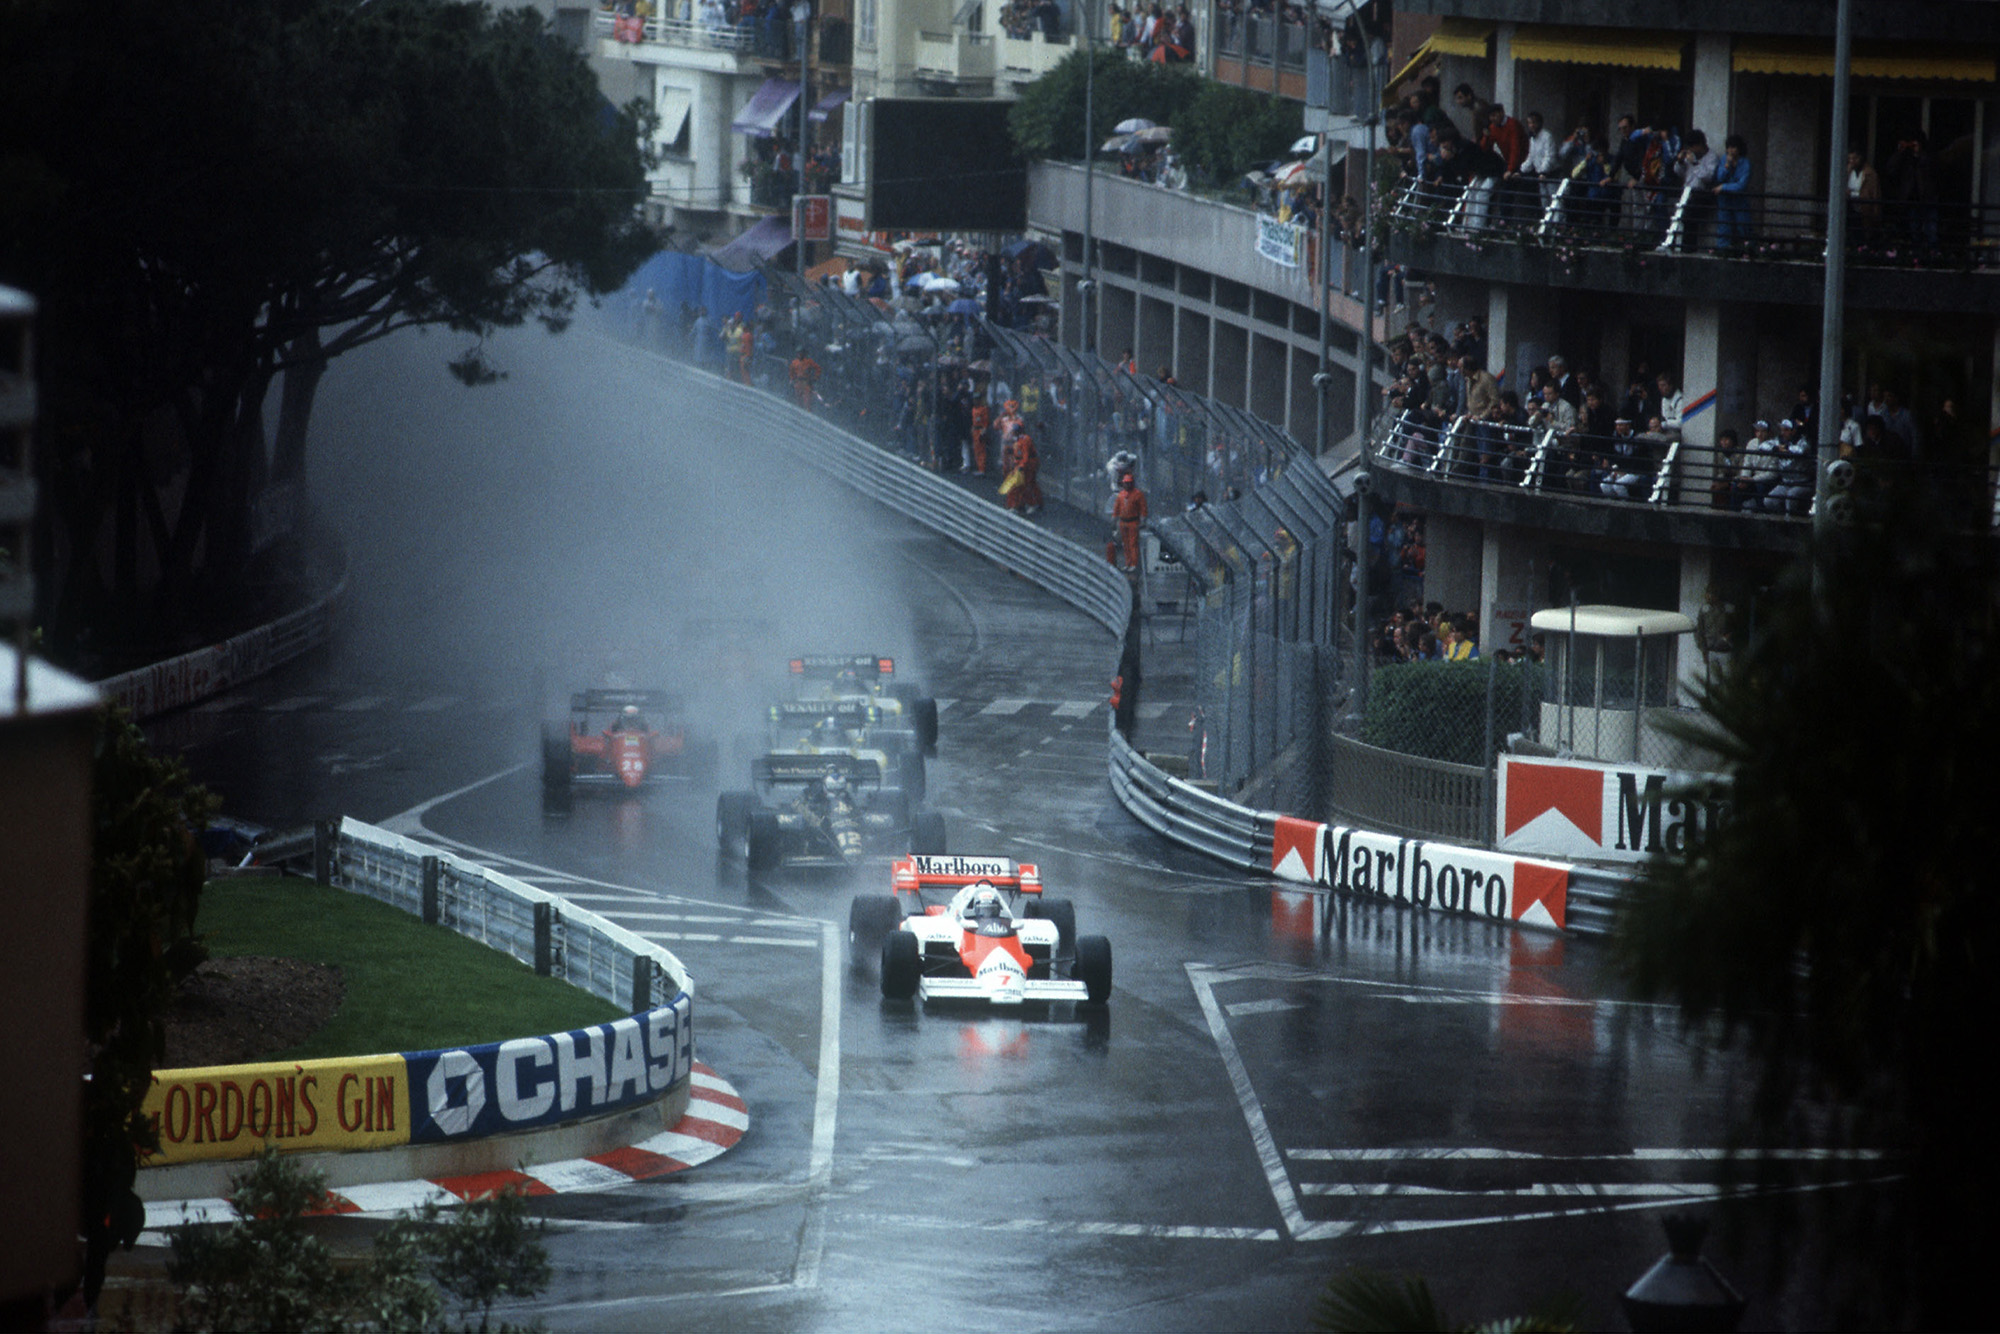 1984 Monaco Grand Prix: the arrival of Senna